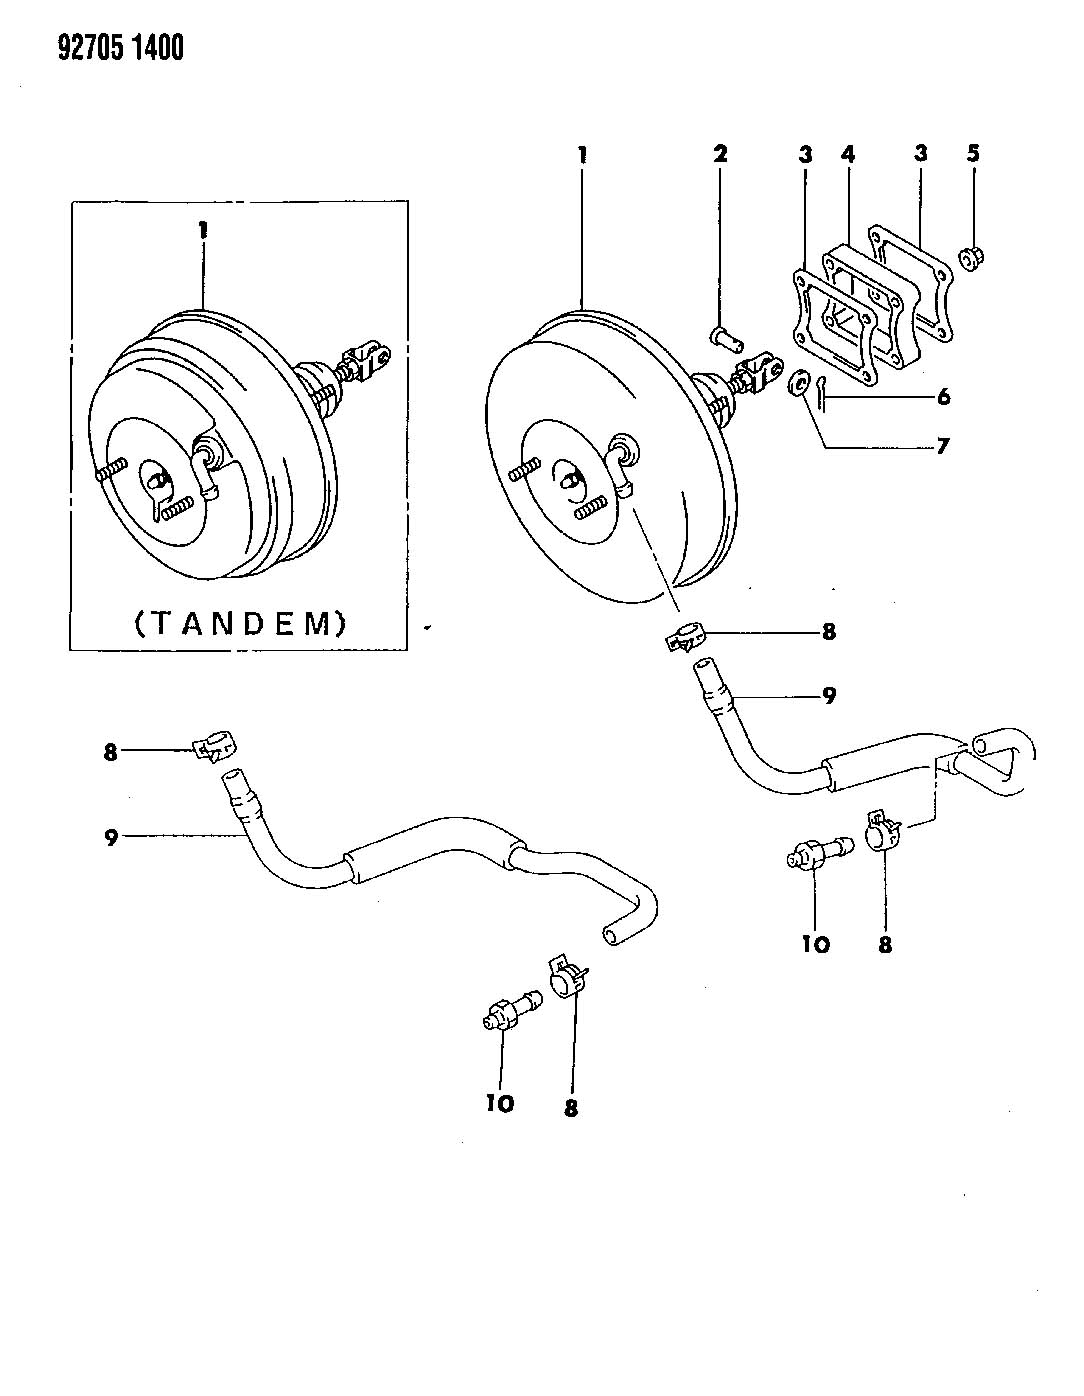 Diagram BOOSTER, POWER BRAKE CZ 35-COLT WAGON, SUMMIT WAGON for your Dodge